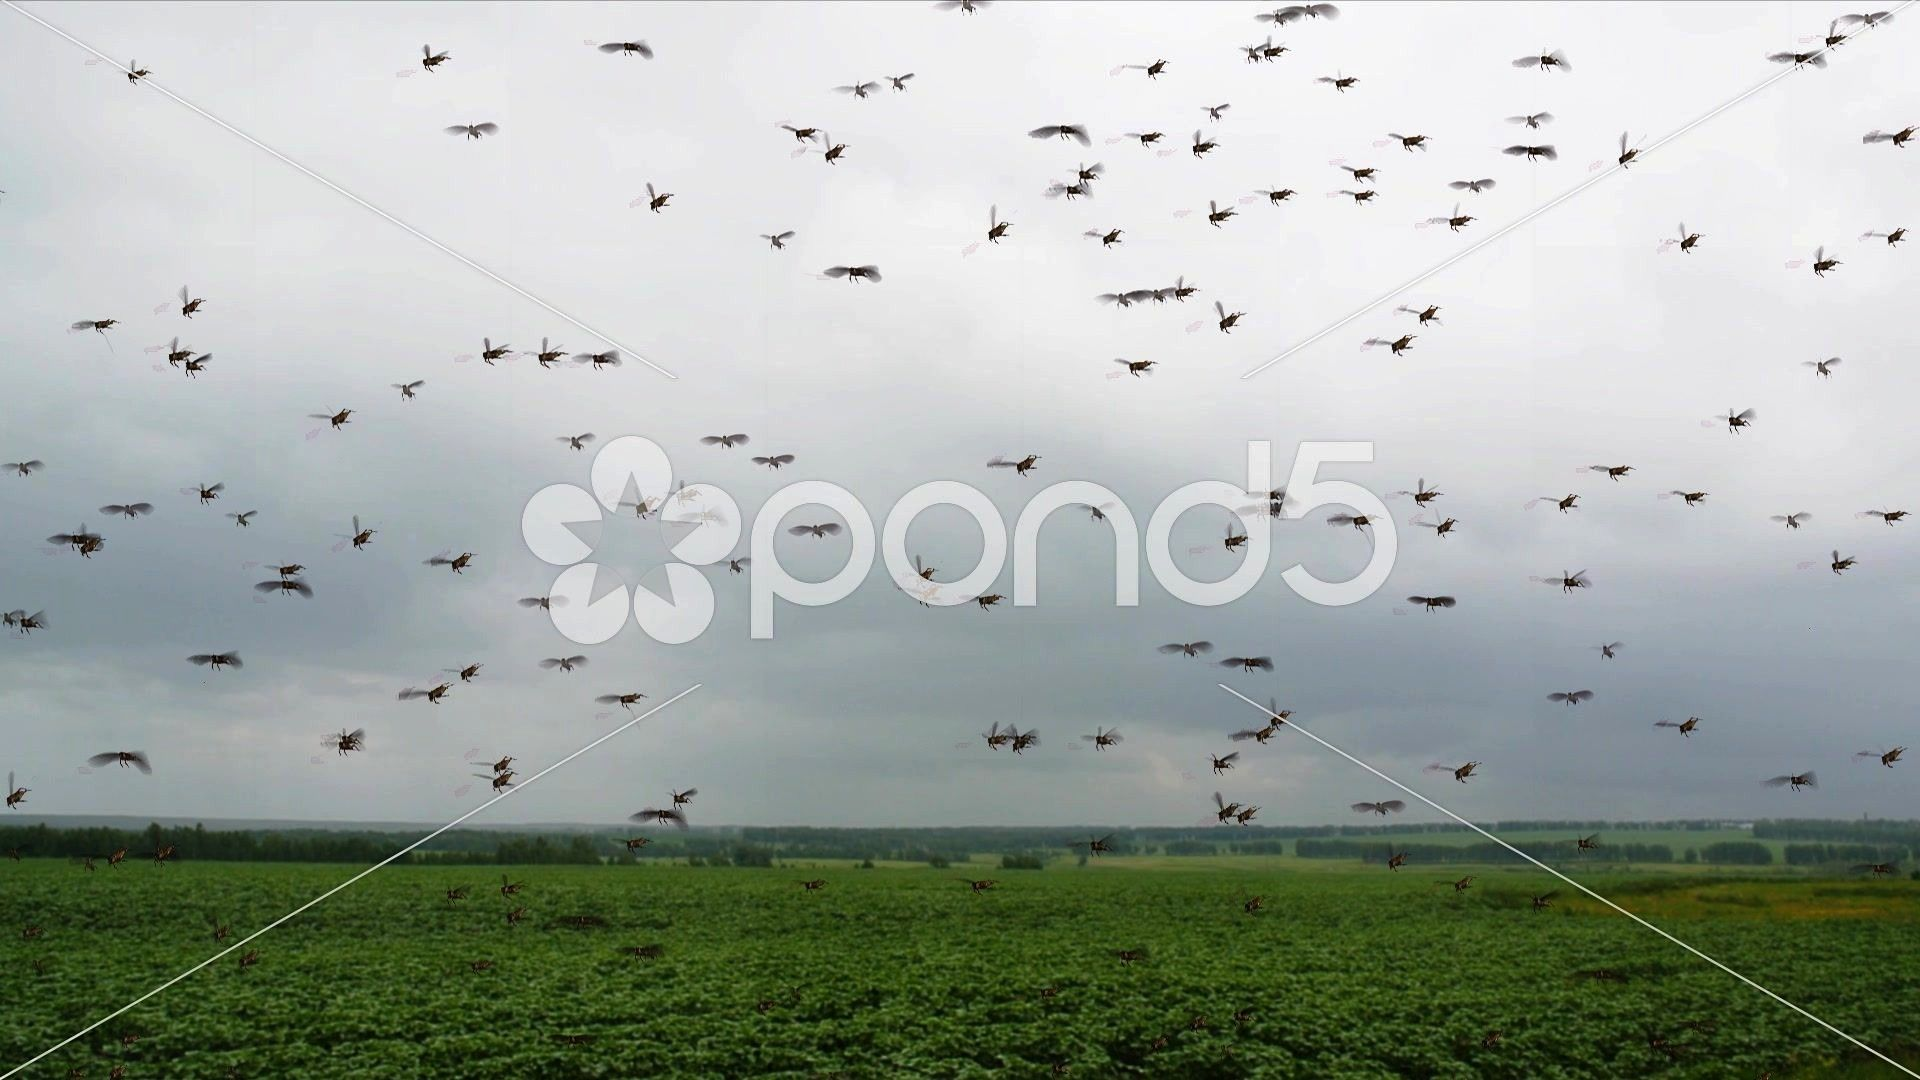 Swarm on the field Stock Footage SwarmLocustFootagefieldLocust Swarm on the field Stock Footage SwarmLocustFootagefield Weekly Inspiration Dose 063  Indieground Design Cr...